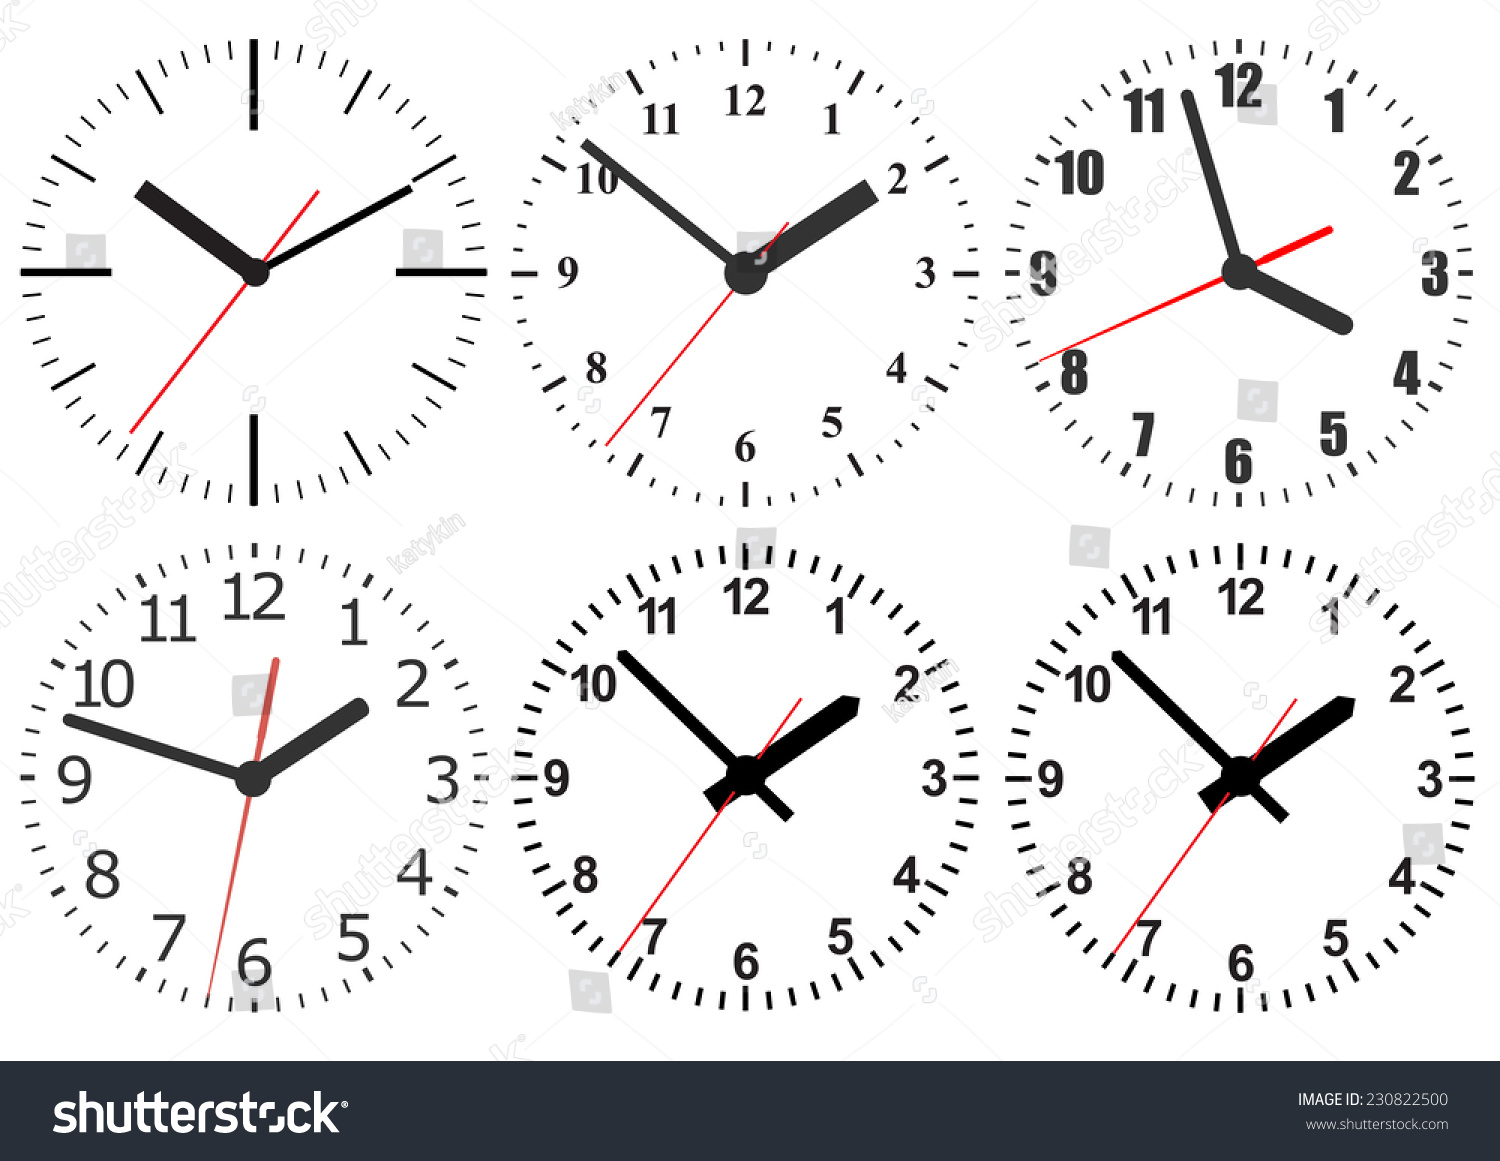 Wall mounted digital clocks wall mounted digital clock stock vector 230822500 shutterstock amipublicfo Image collections